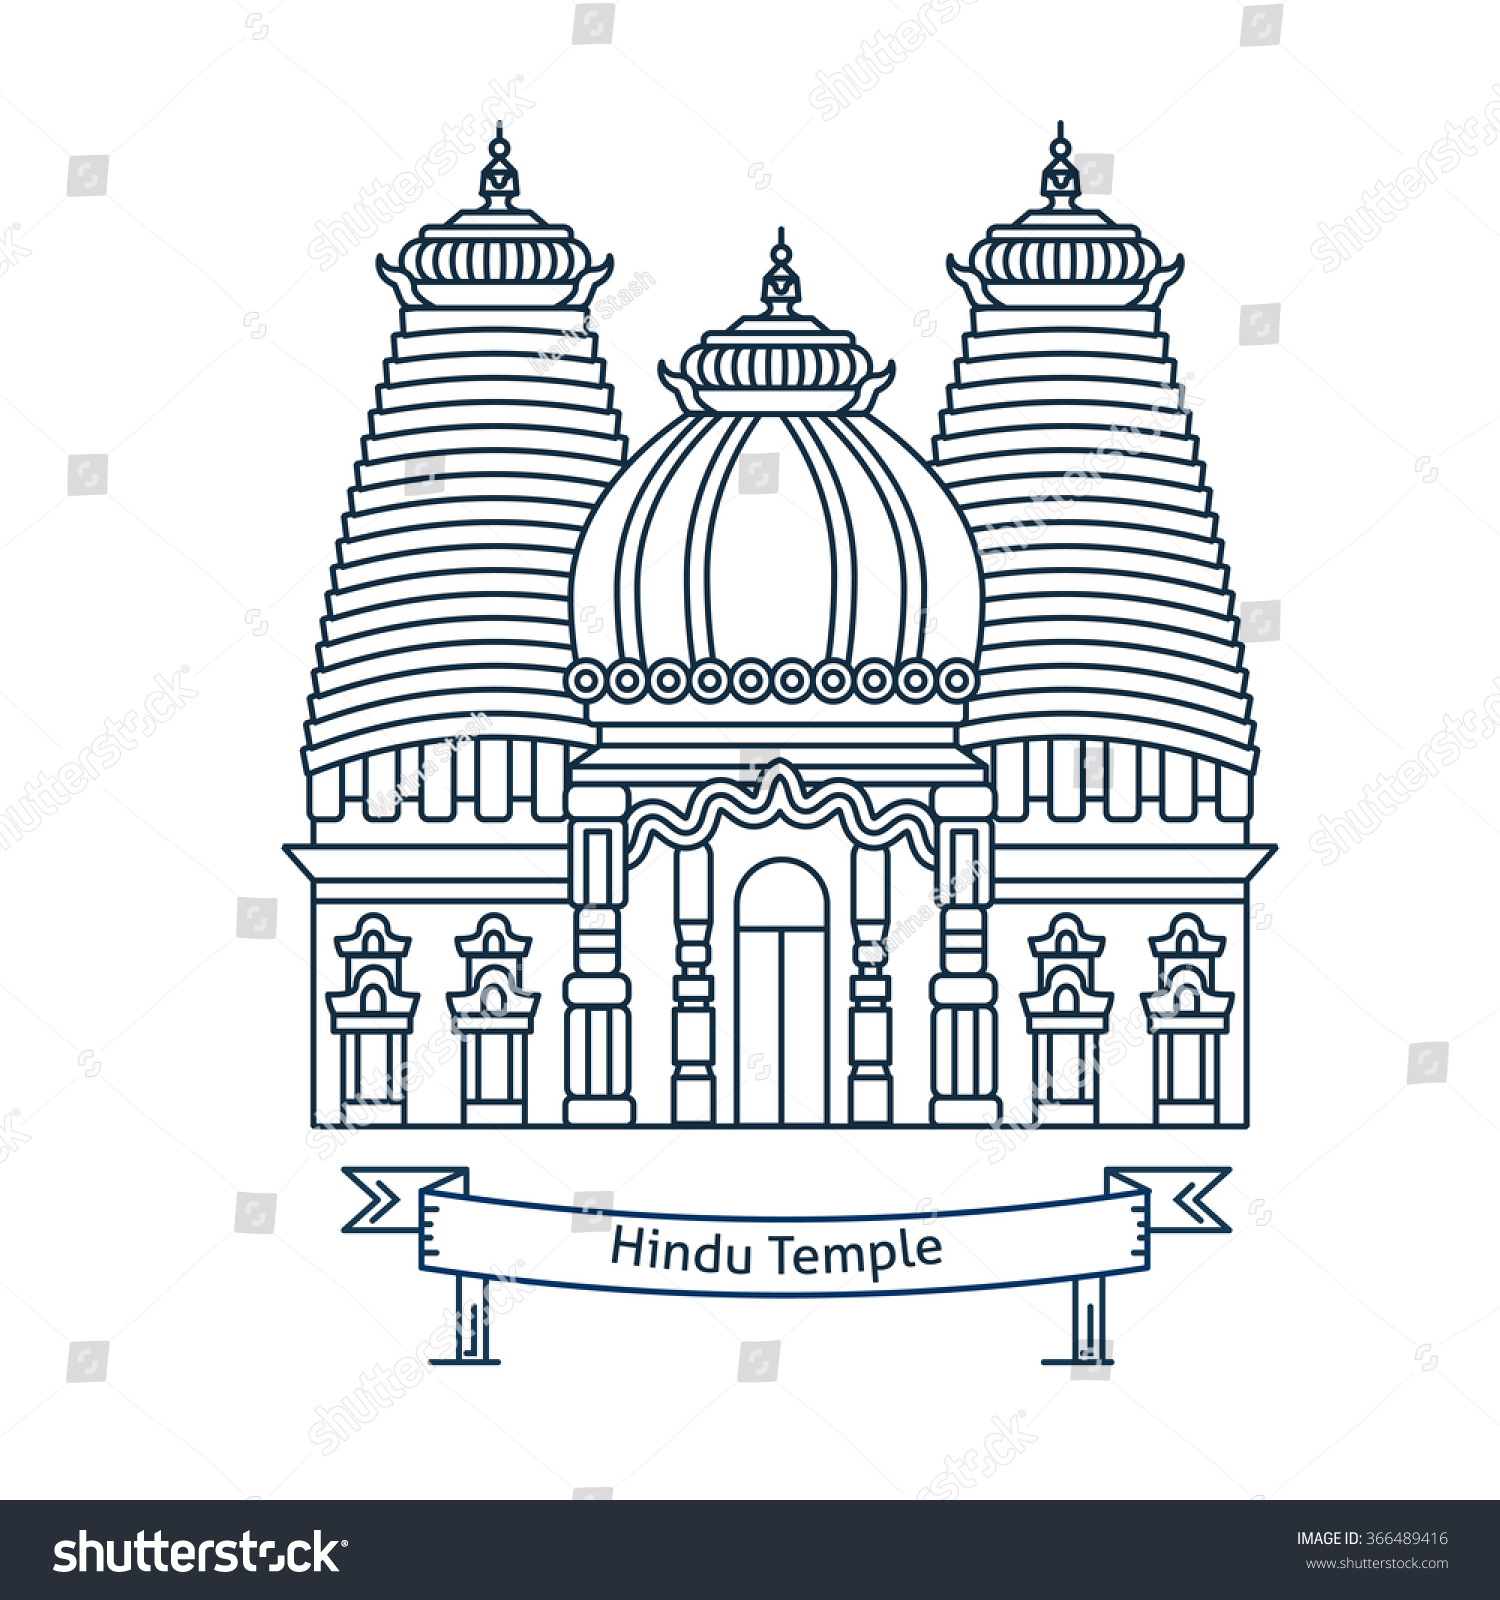 Hindu temple hinduism symbol indian temple stock vector 366489416 hindu temple hinduism symbol indian temple flat line vector architecture illustration outlined biocorpaavc Gallery